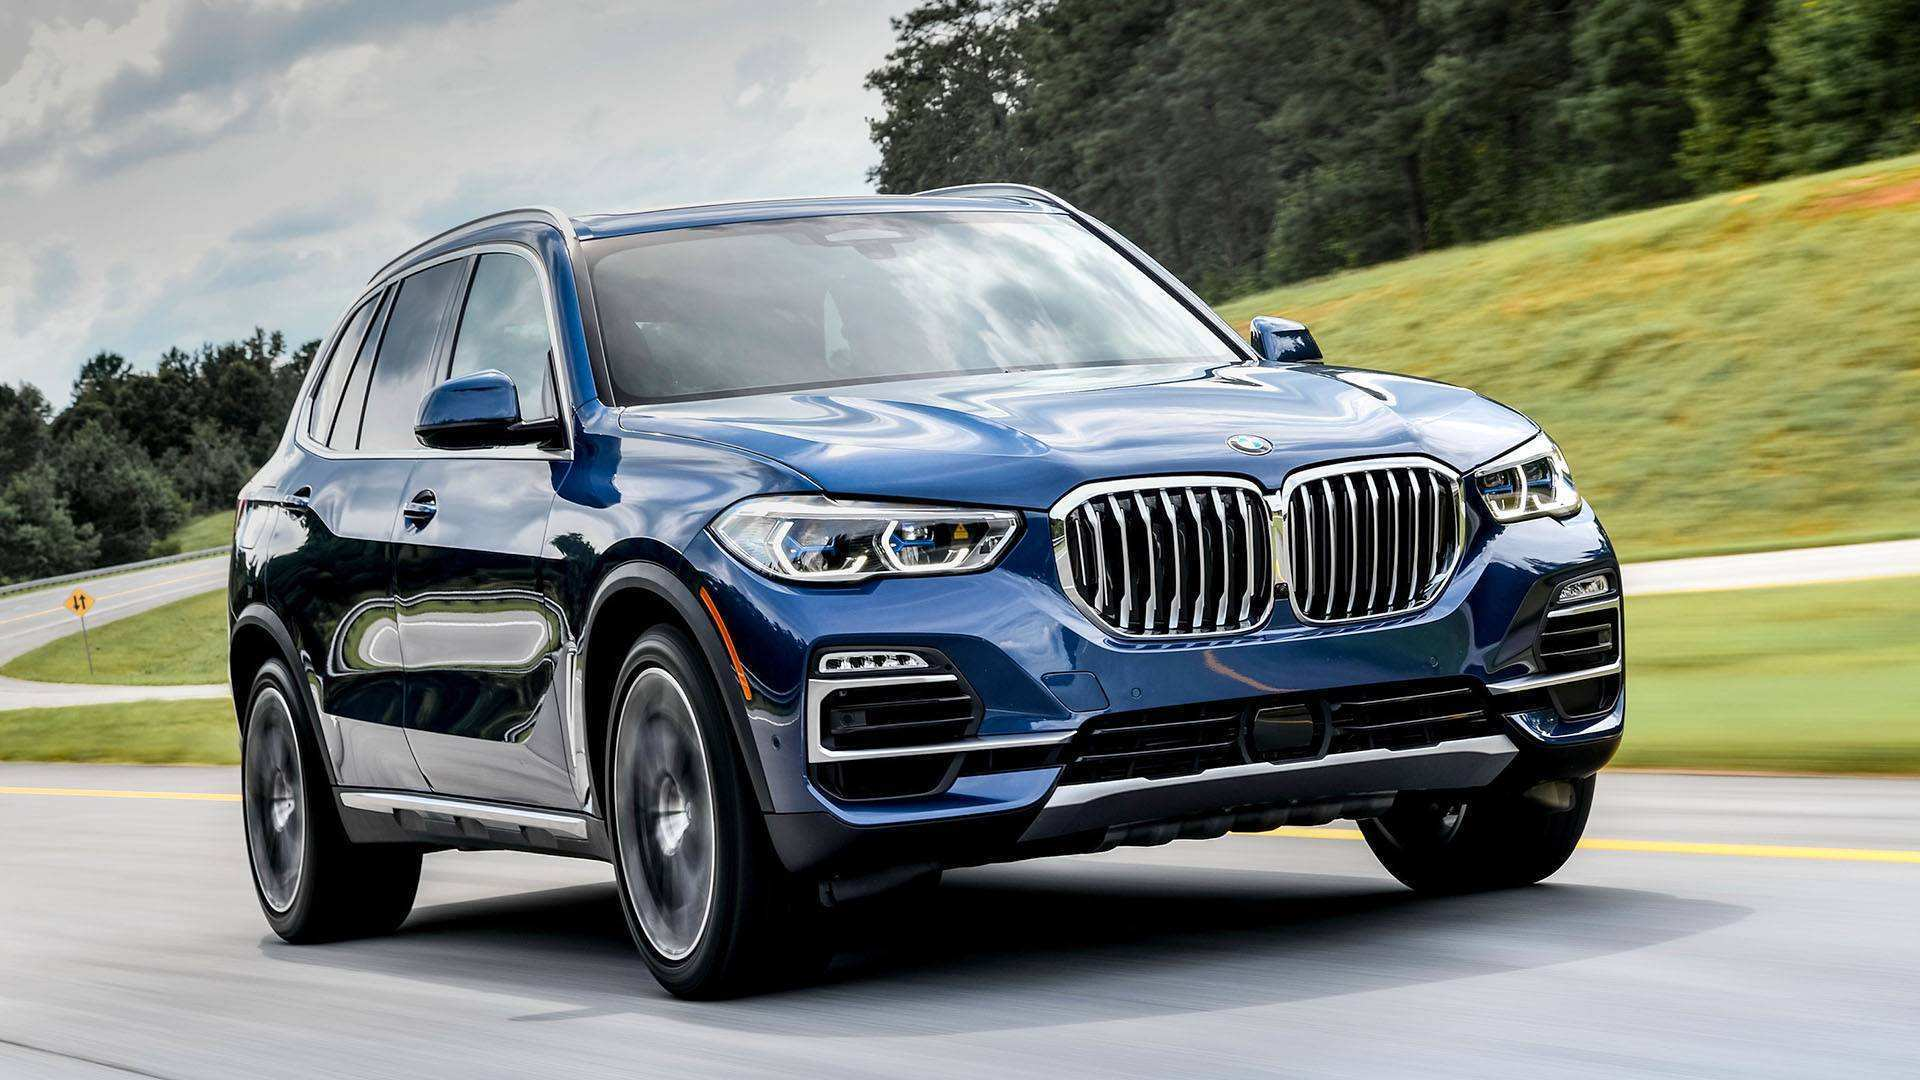 83 All New 2019 BMW X5 Specs